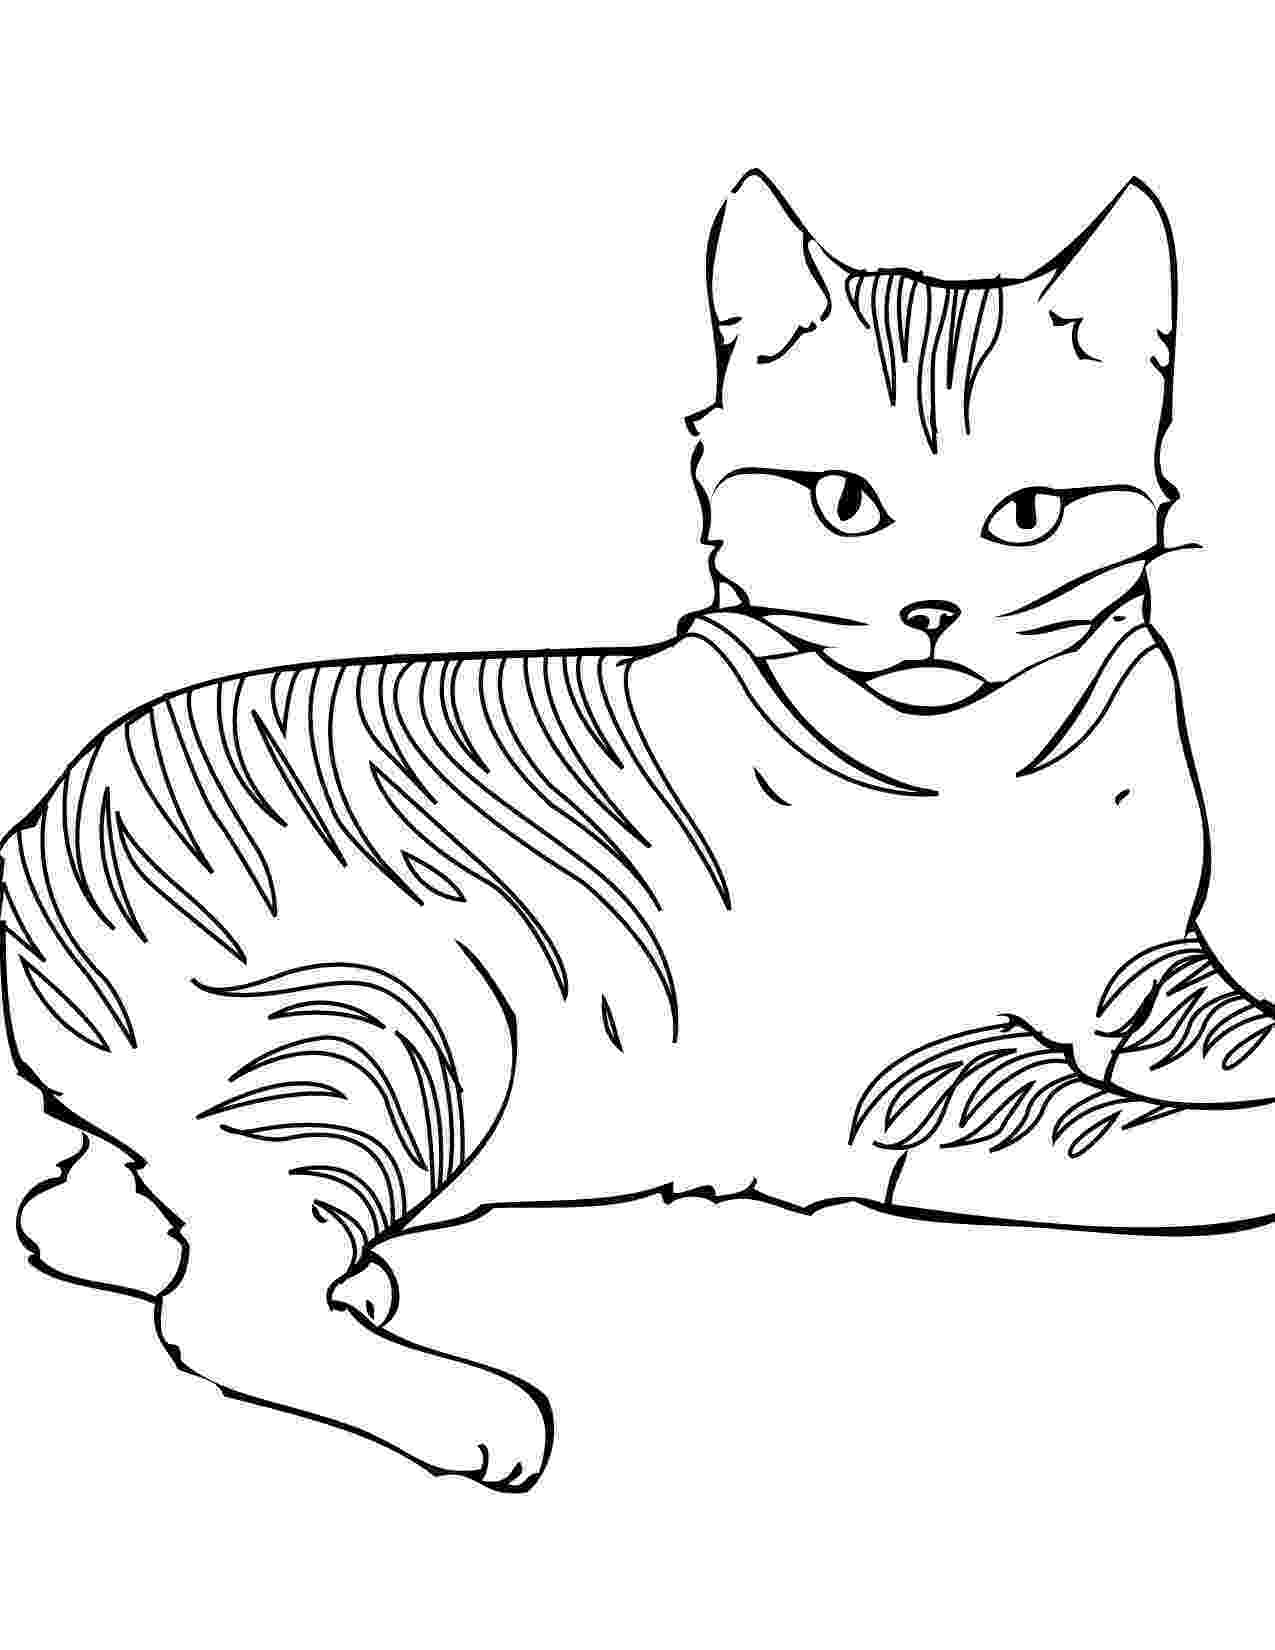 pictures of cats and kittens to color free printable cat coloring pages for kids kittens pictures of and to cats color